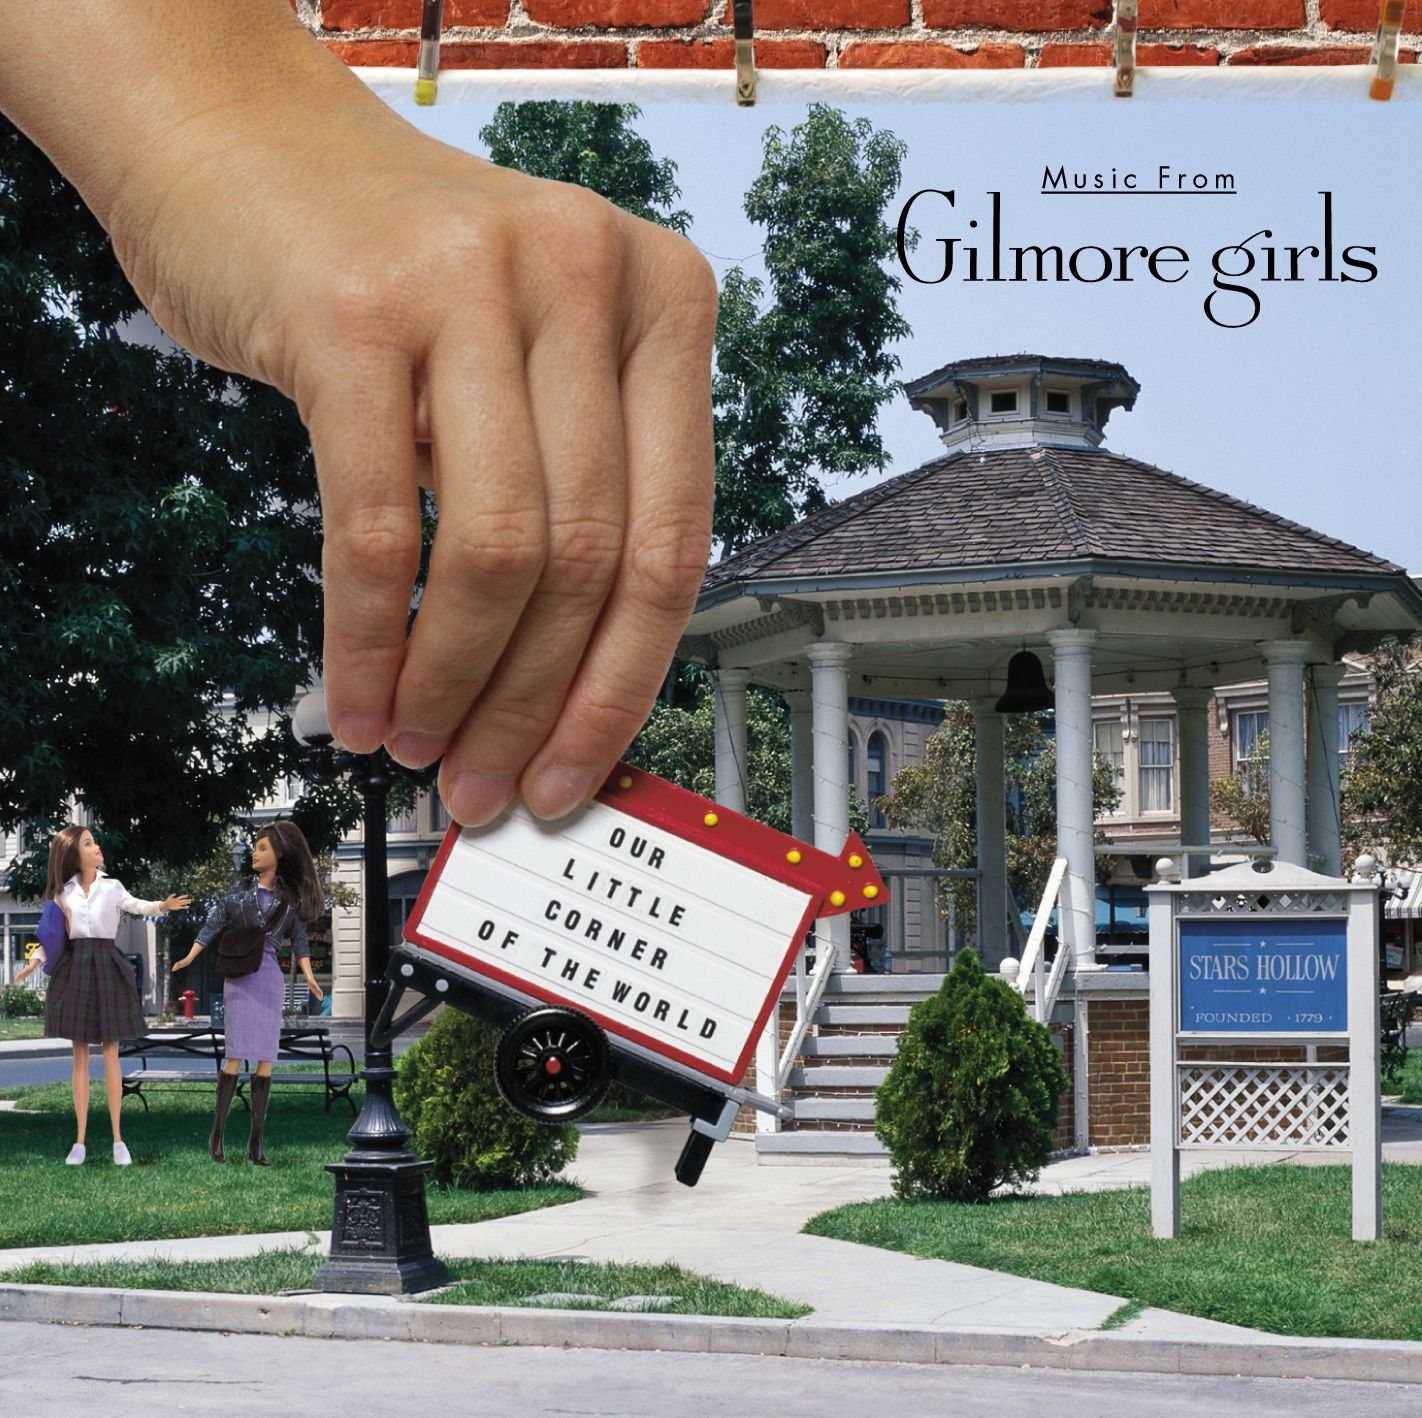 Our Little Corner of the World: Music From Gilmore Girls by Rhino